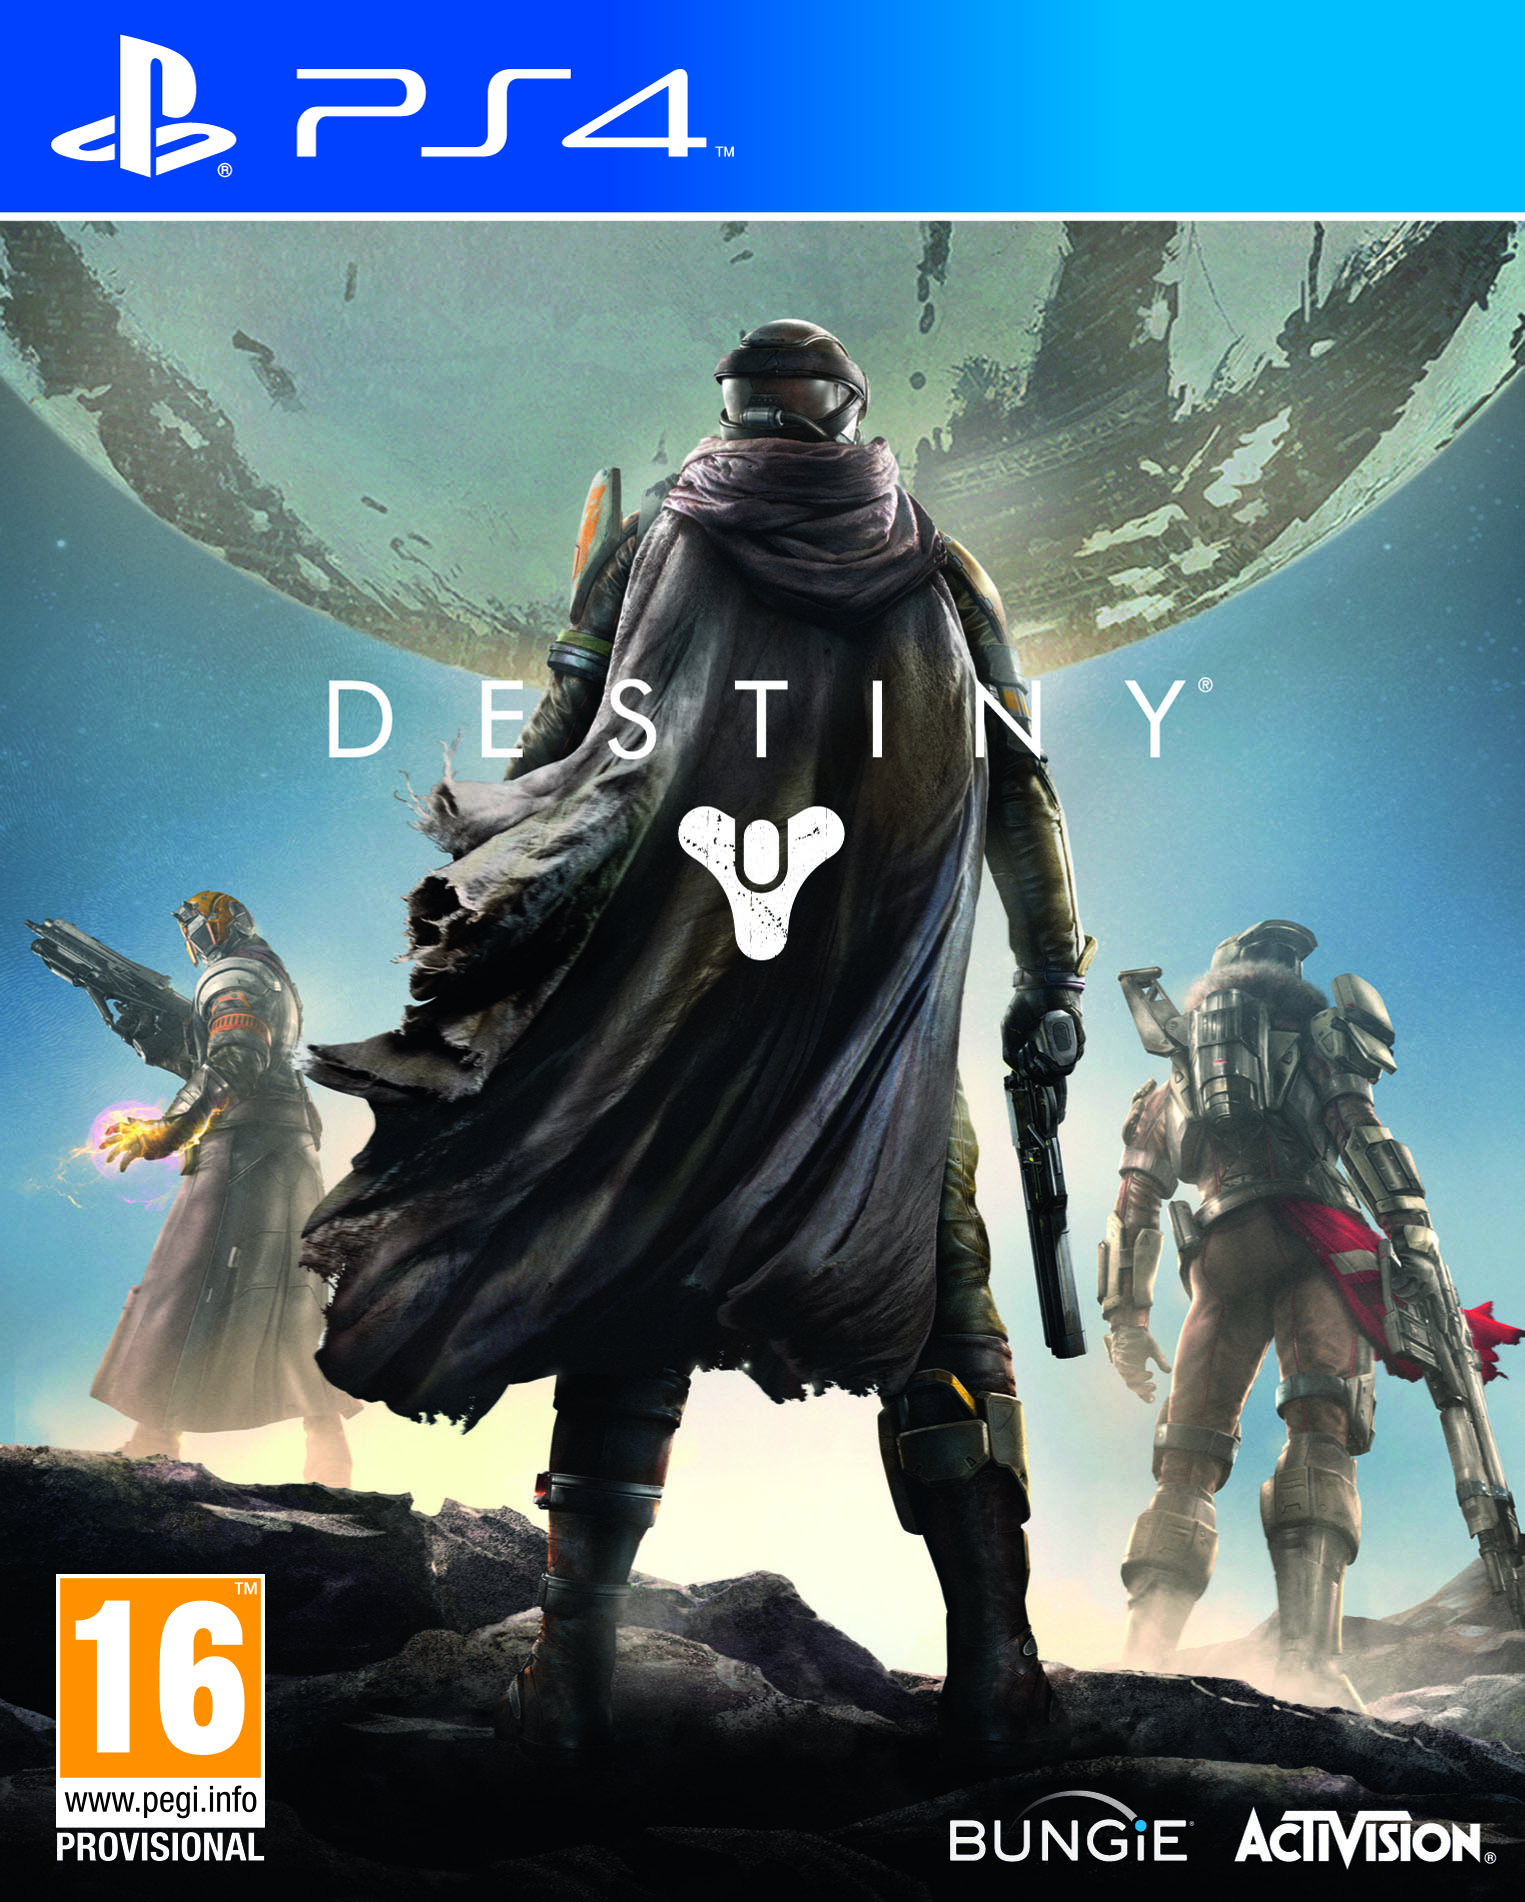 PS4_cover_art